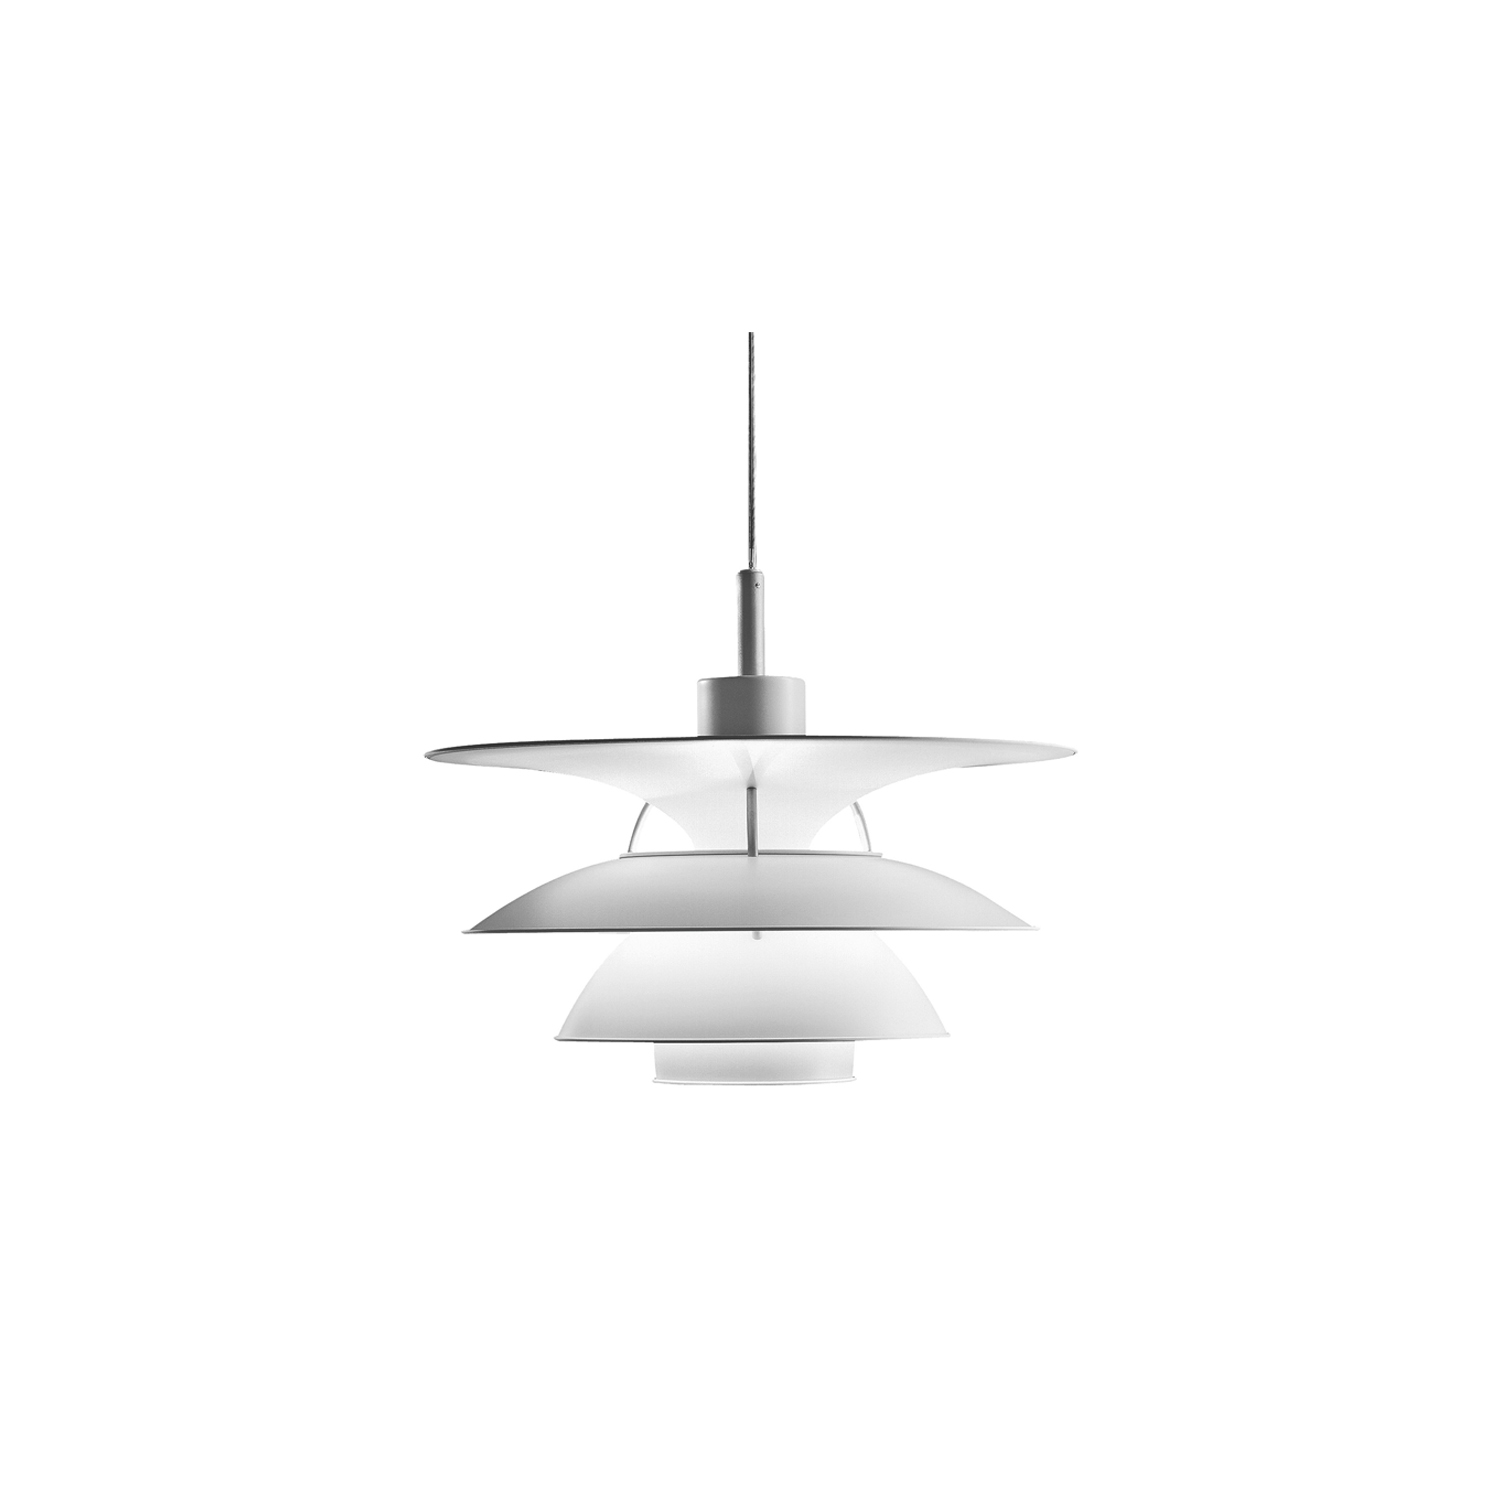 PH 5-4½ & PH 6½-6 Pendant Light - The trumpet-shaped top shade on the fixture provides illumination of the area above the three shades, which primarily direct the light downwards. A base reflector and a blue glare ring protect against glare from all angles. The strongest light is directly under the fixture. The shades have a matt white painted finish to ensure very comfortable lighting. | Matter of Stuff